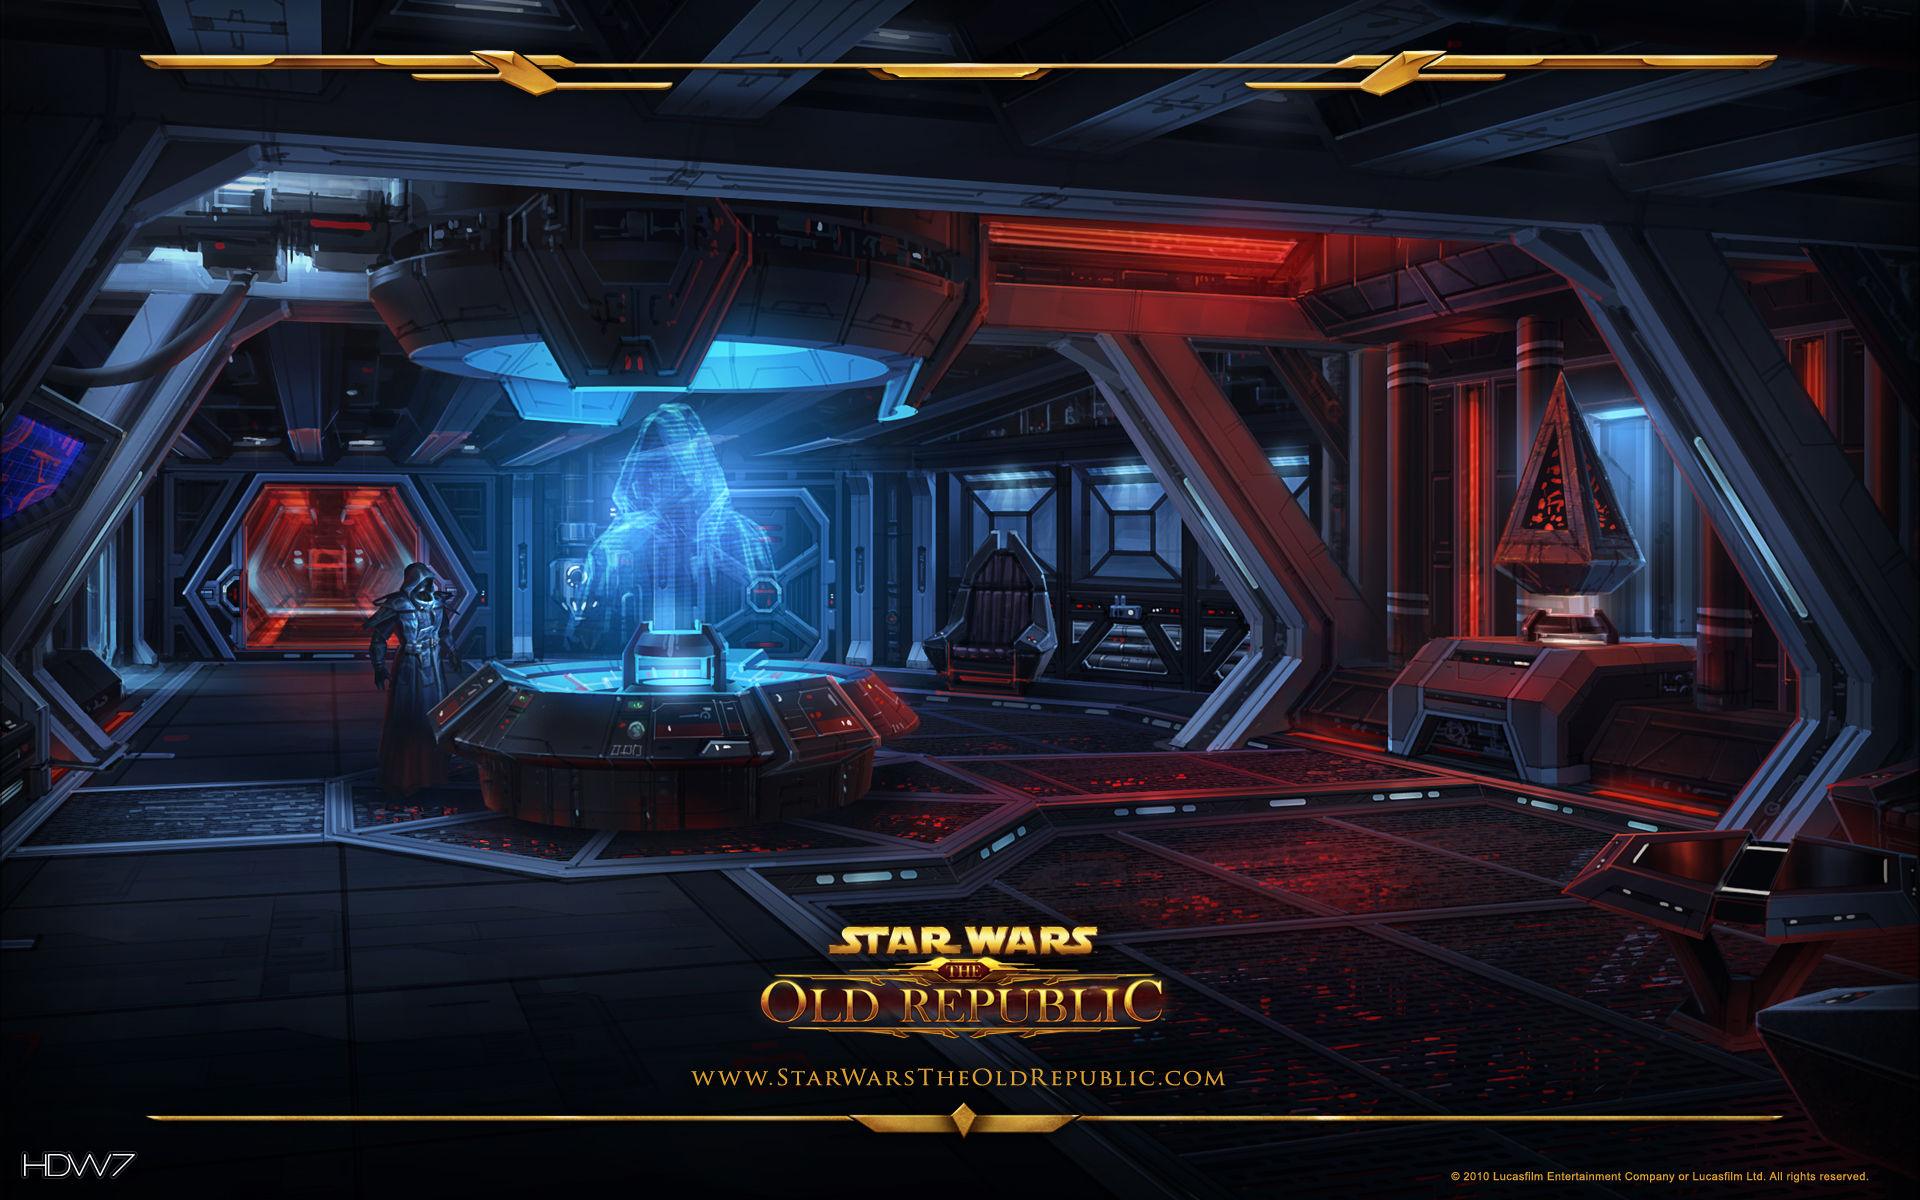 192 1928096 star wars the old republic sith starship interior